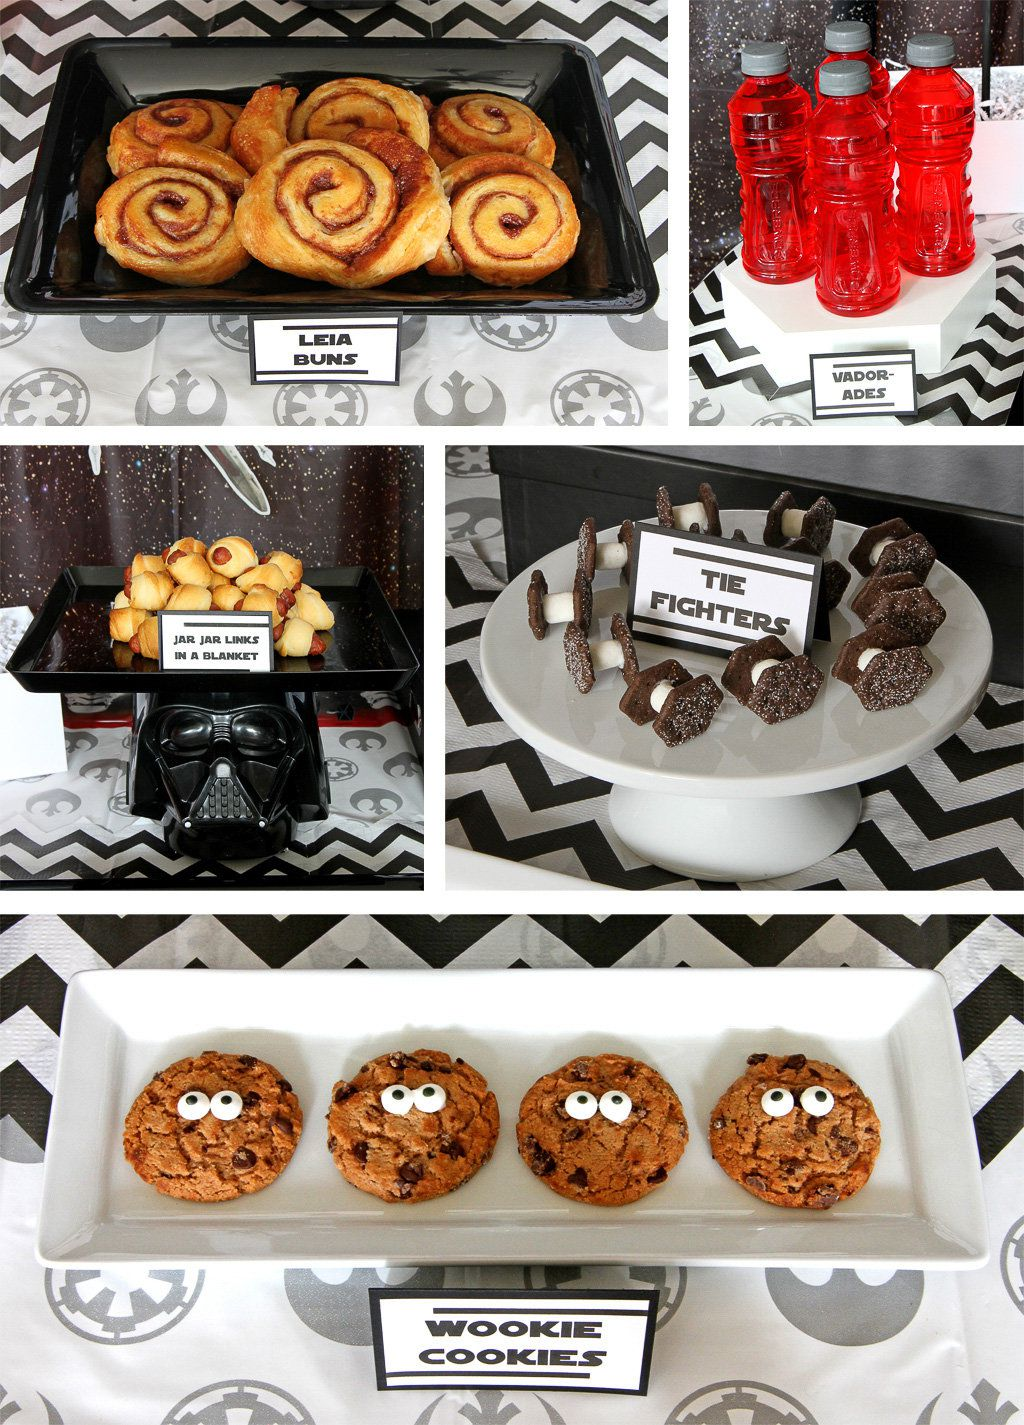 Star Wars Party - Food Ideas